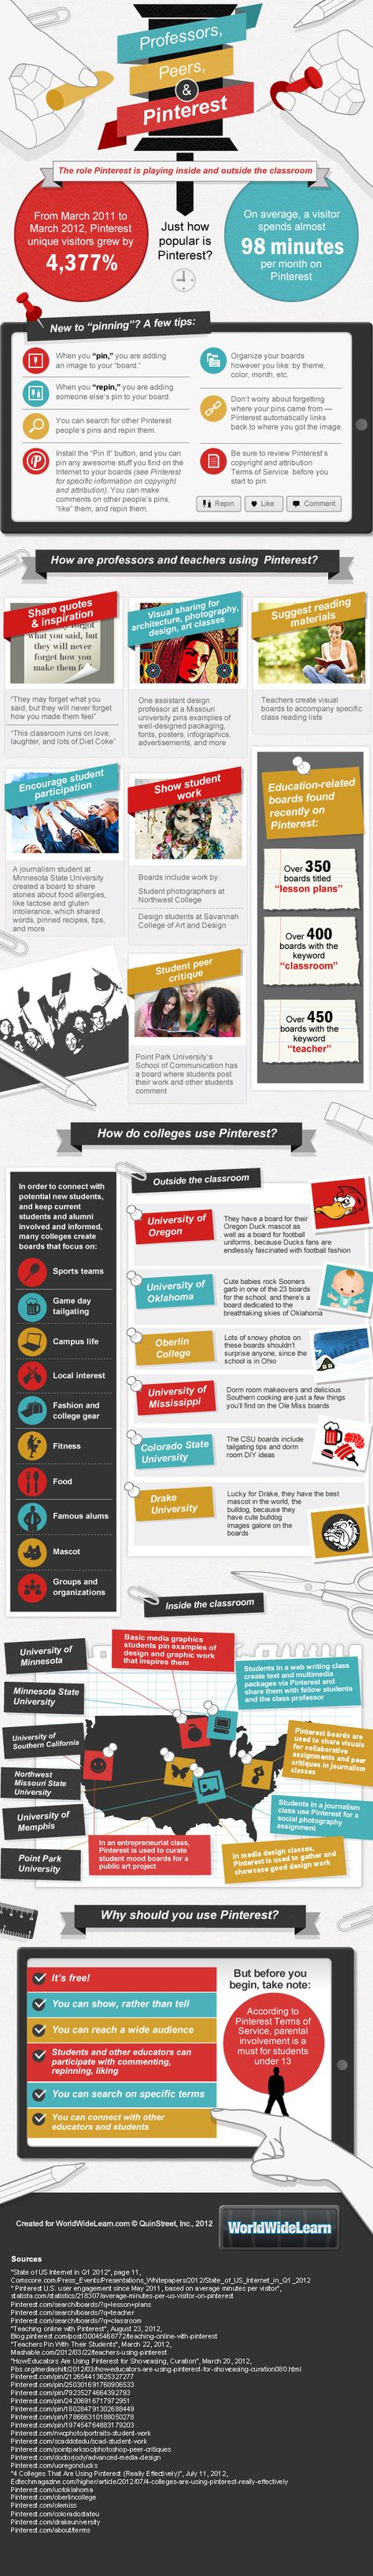 346 Uses of Pinterest in Education #edtechchat